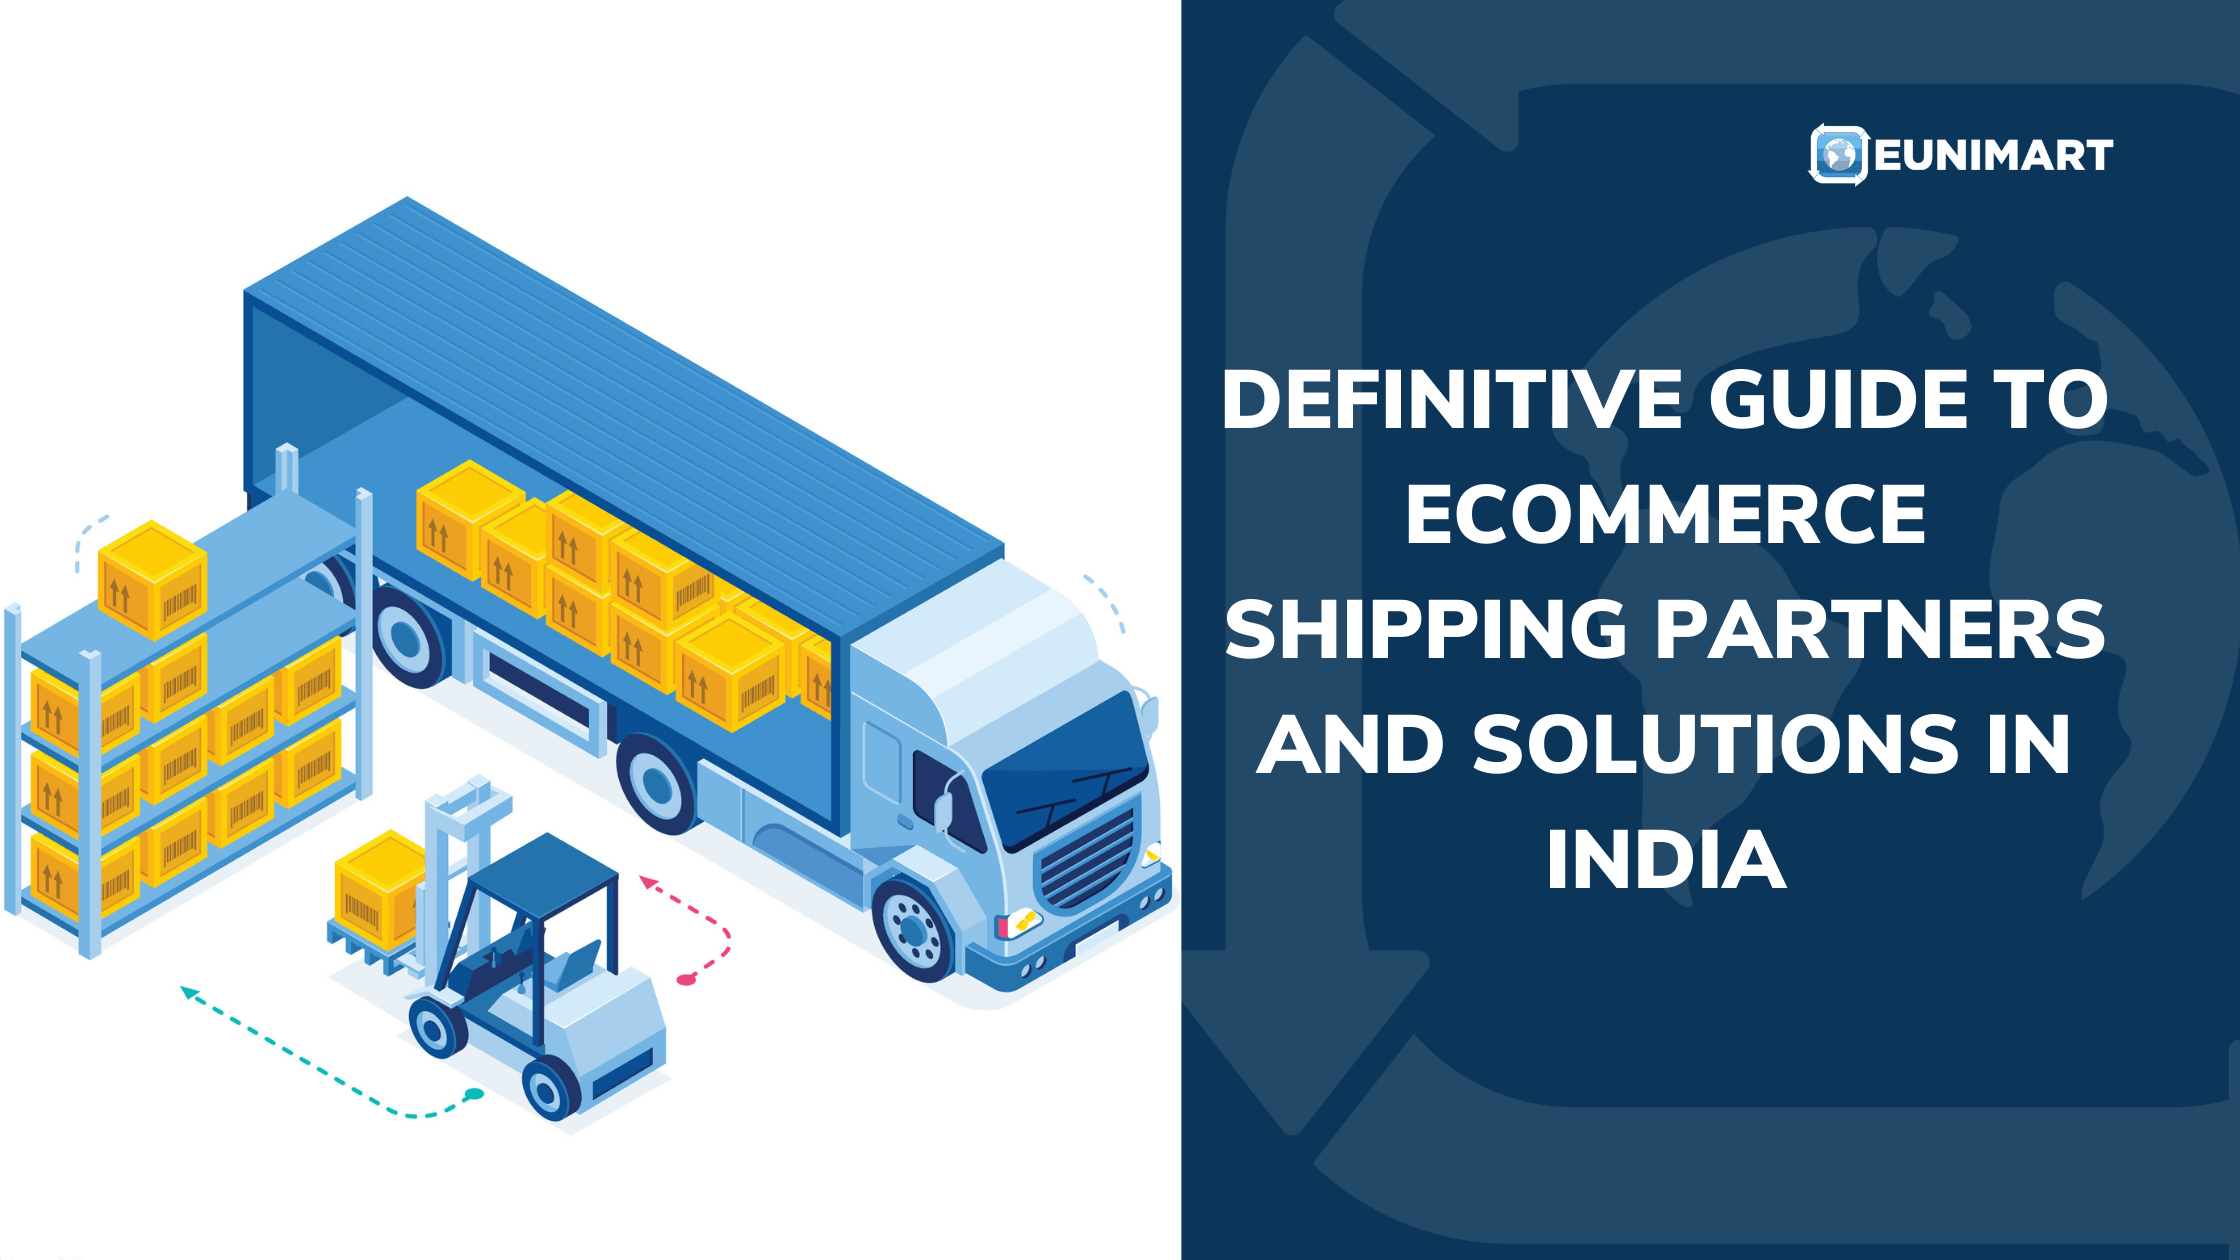 Definitive Guide to E-Commerce Shipping Partners and Solutions in India